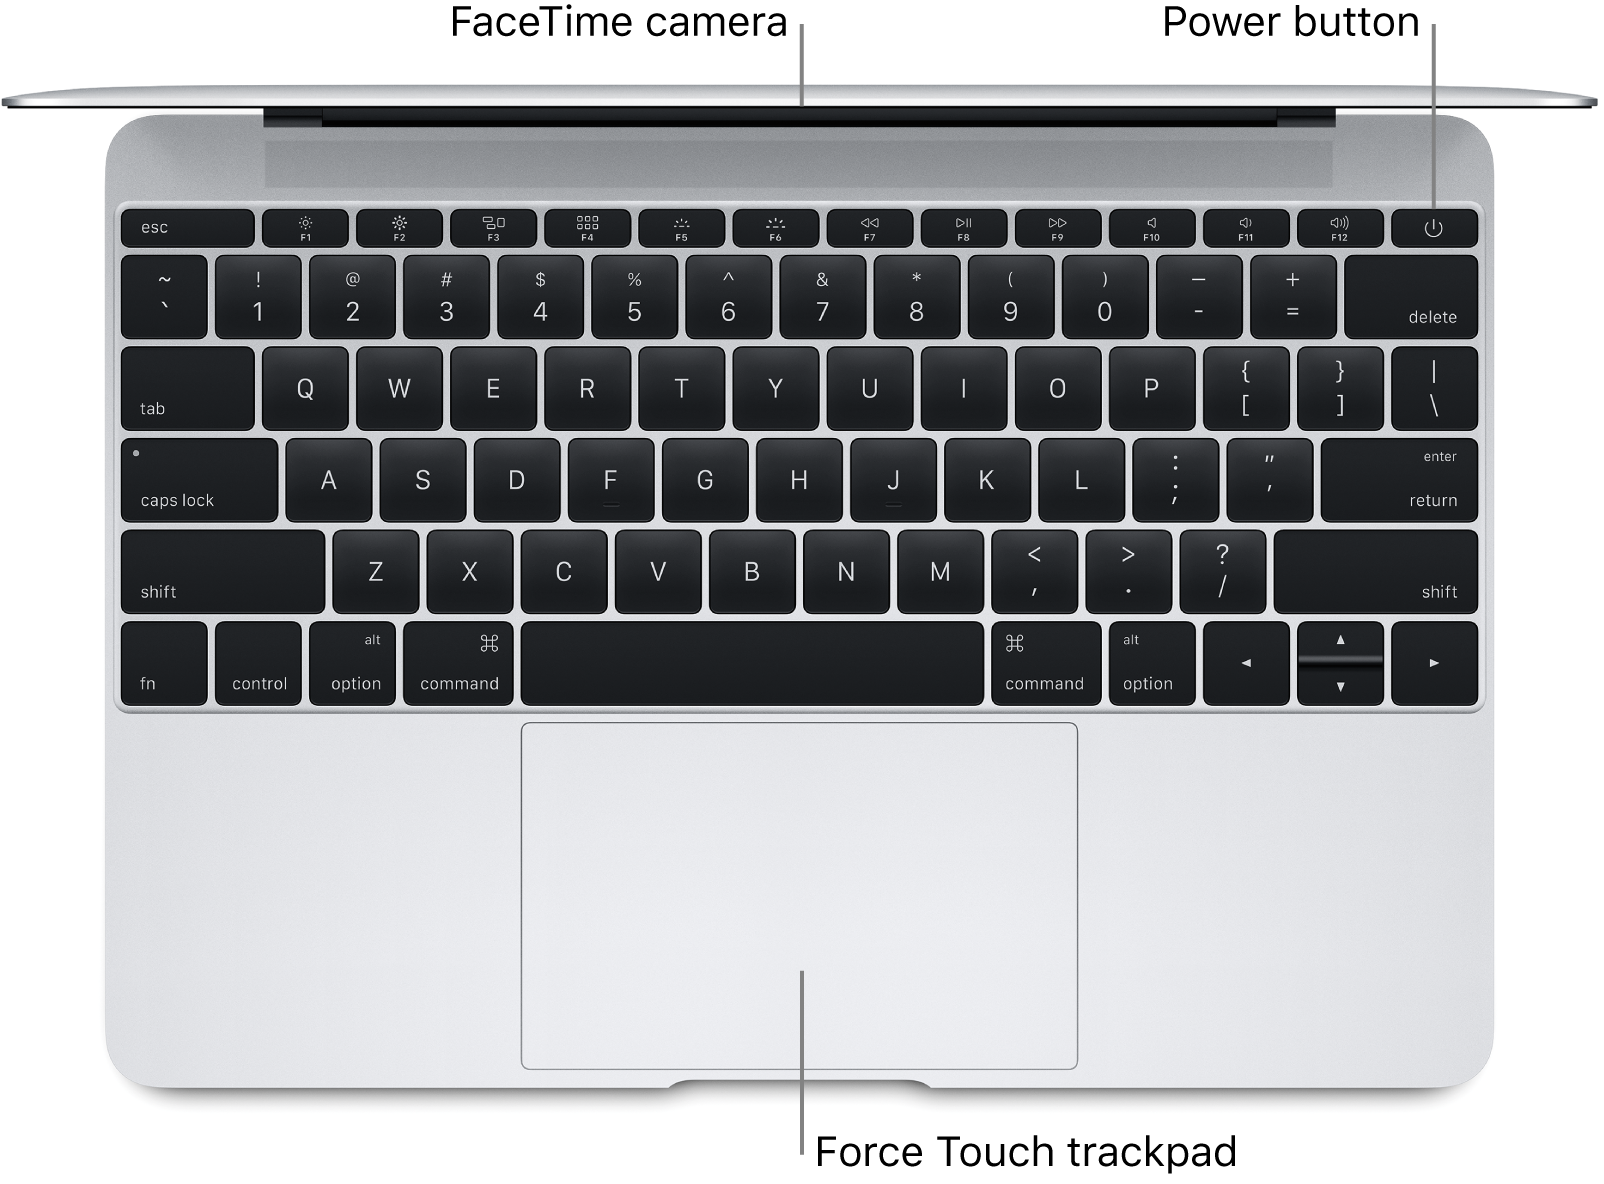 Looking down at an open MacBook, with callouts to the FaceTime camera, power button, and Force Touch trackpad.